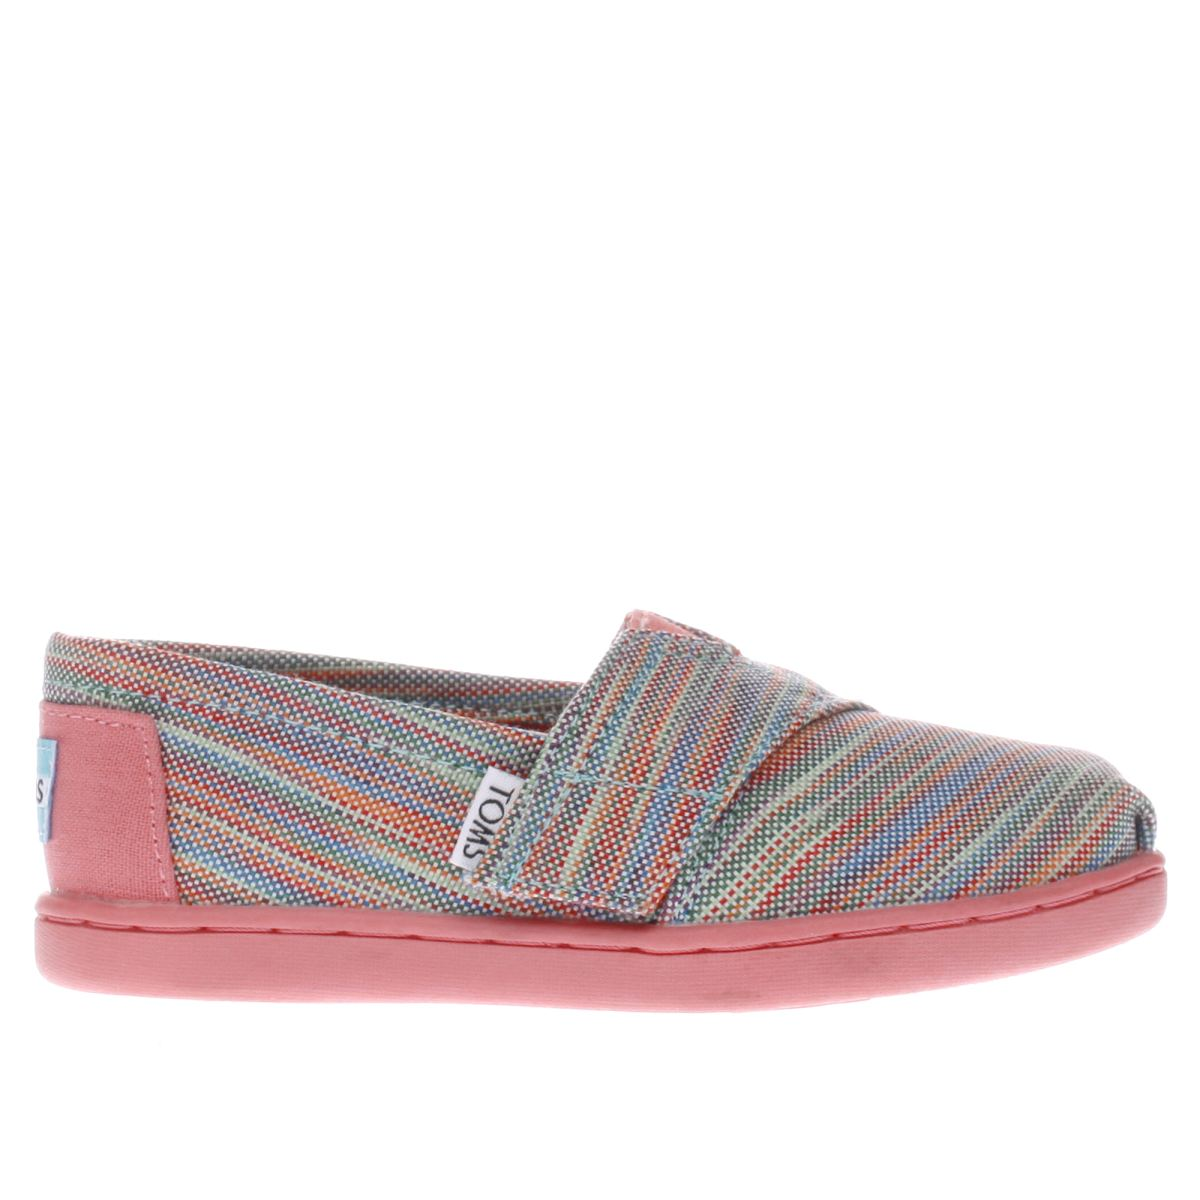 toms pink & green classic Girls Toddler Shoes